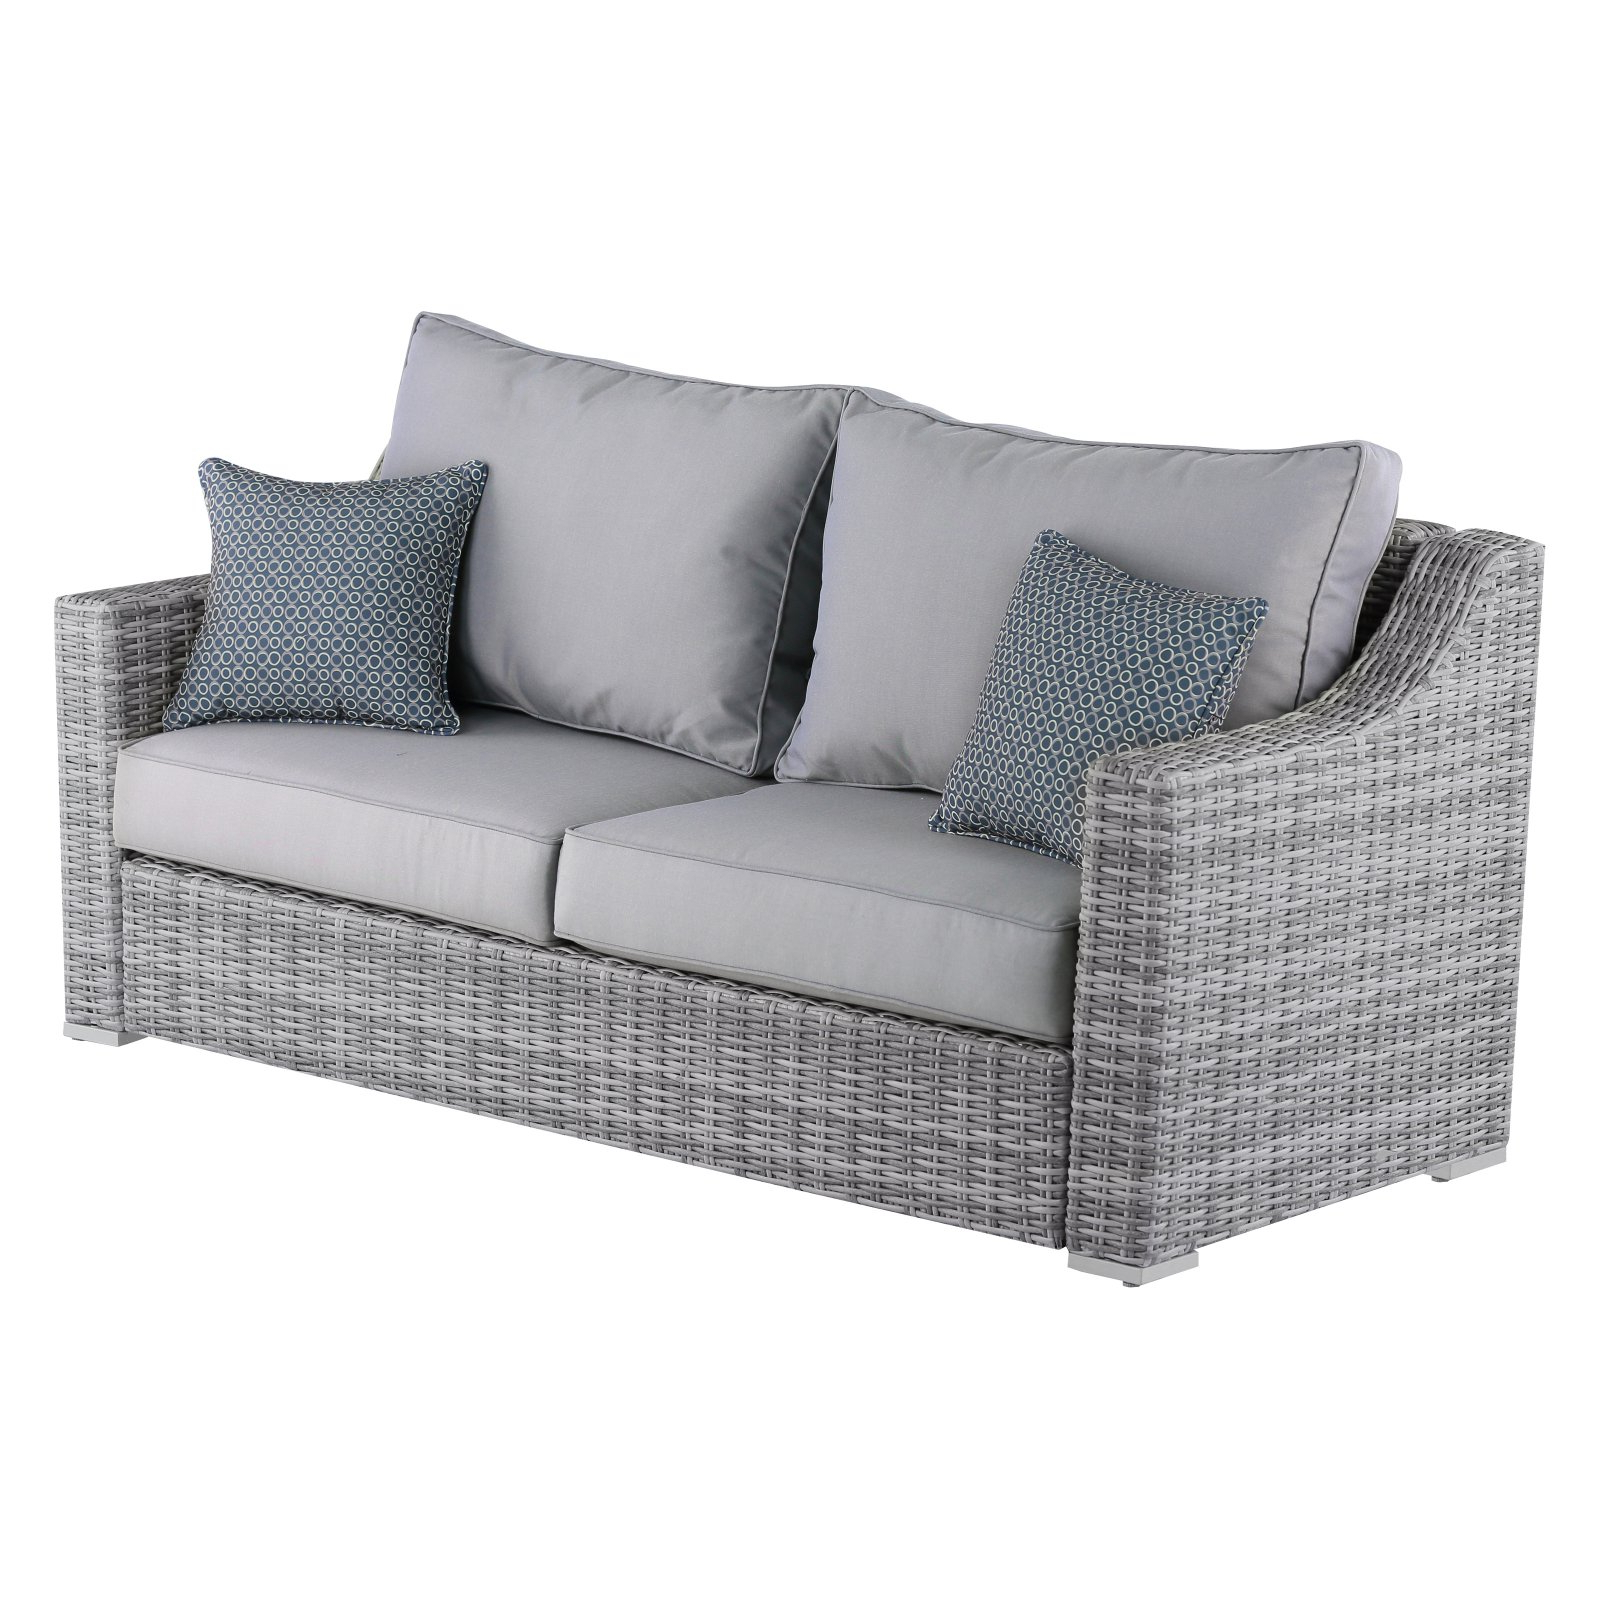 Newest Outdoor Elle Decor Vallauris Wicker Patio Sofa (View 11 of 20)